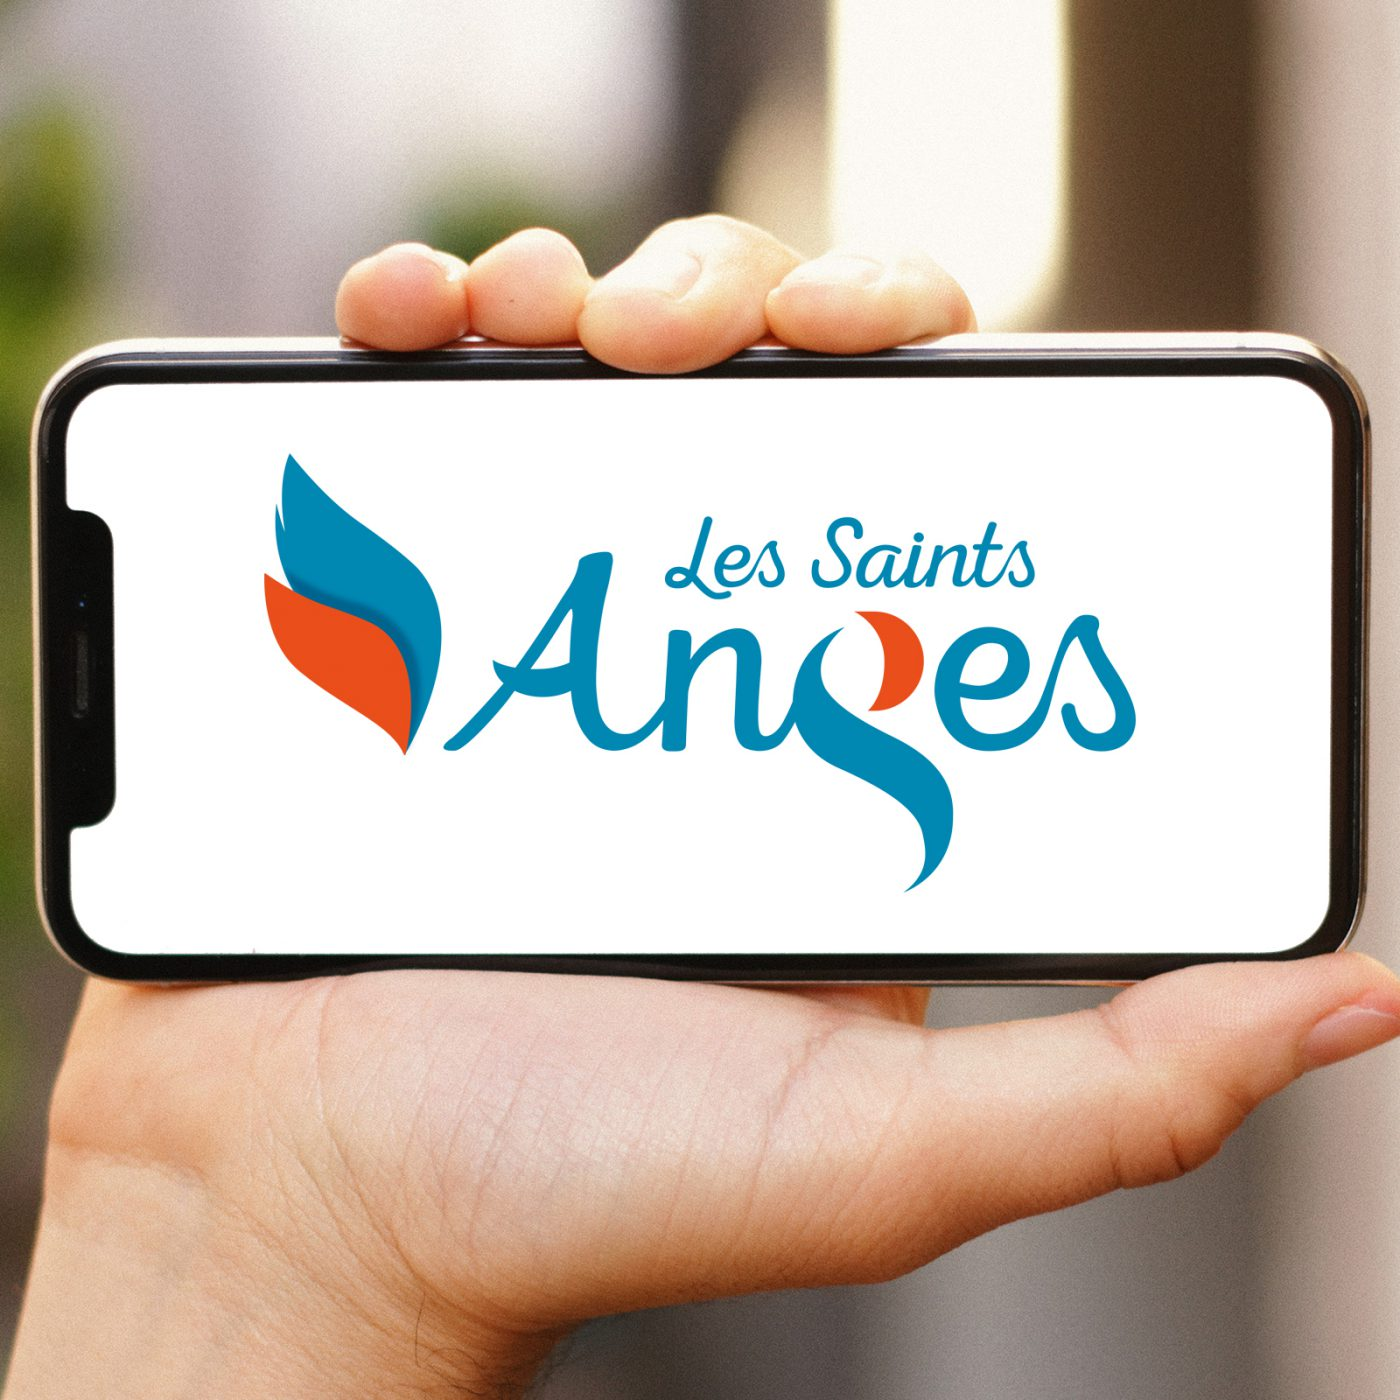 Les Saints-Anges